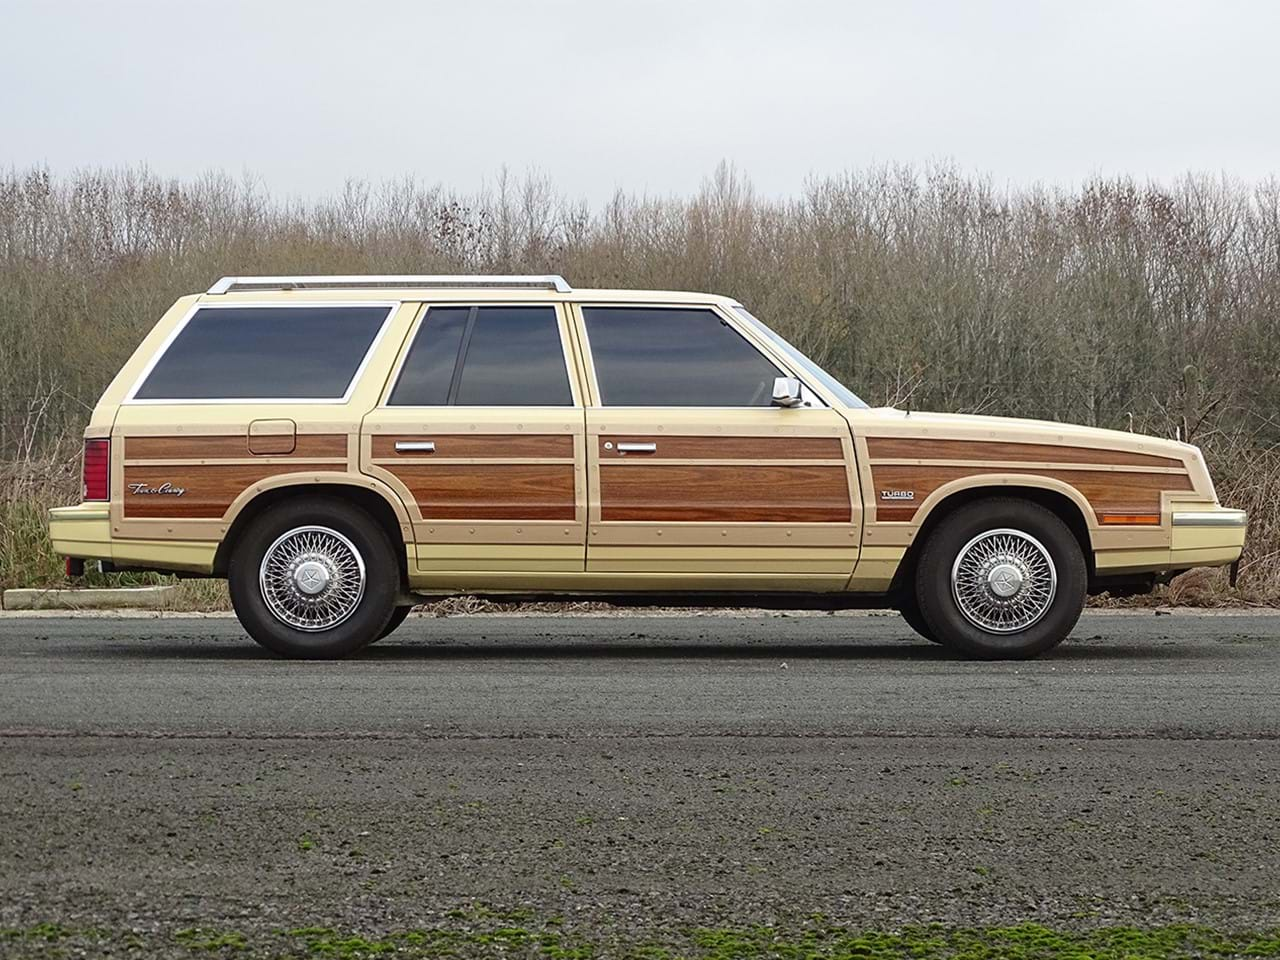 1985 Chrysler LeBaron Town and Country Wagon side profile